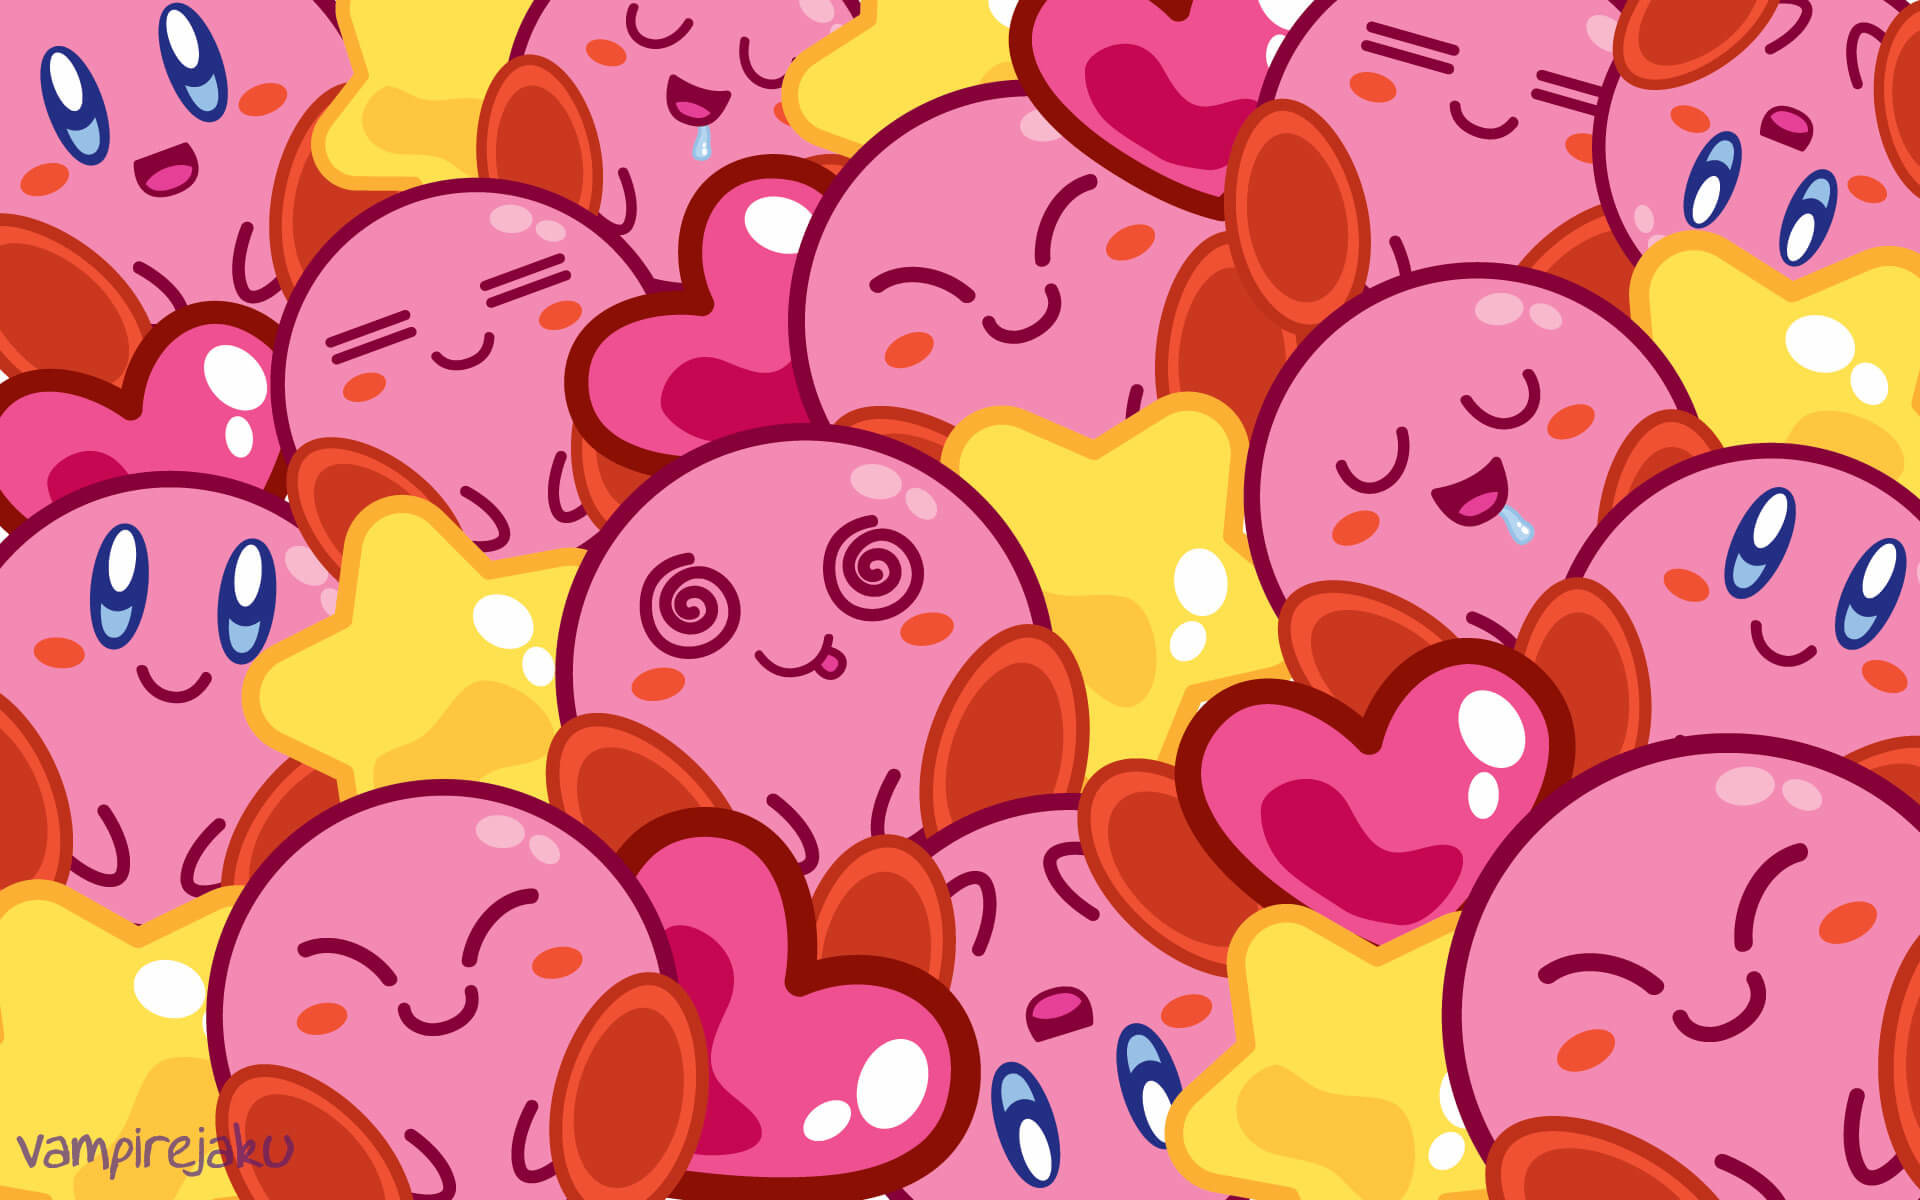 Cute Kirby Wallpaper 69 images 1920x1200